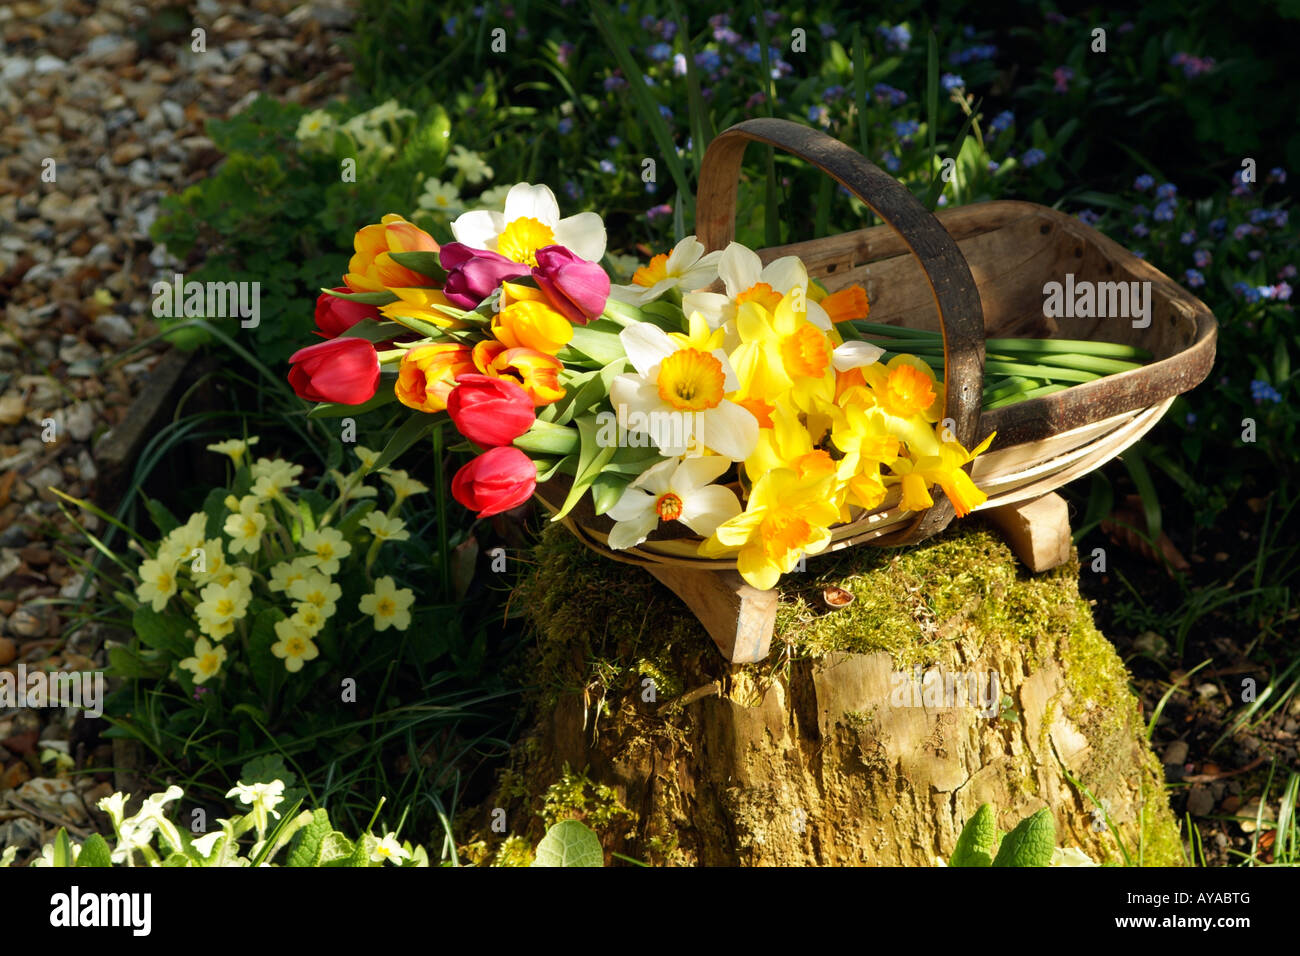 Spring Cut Flowers In A Wooden Garden Trug In An English Country